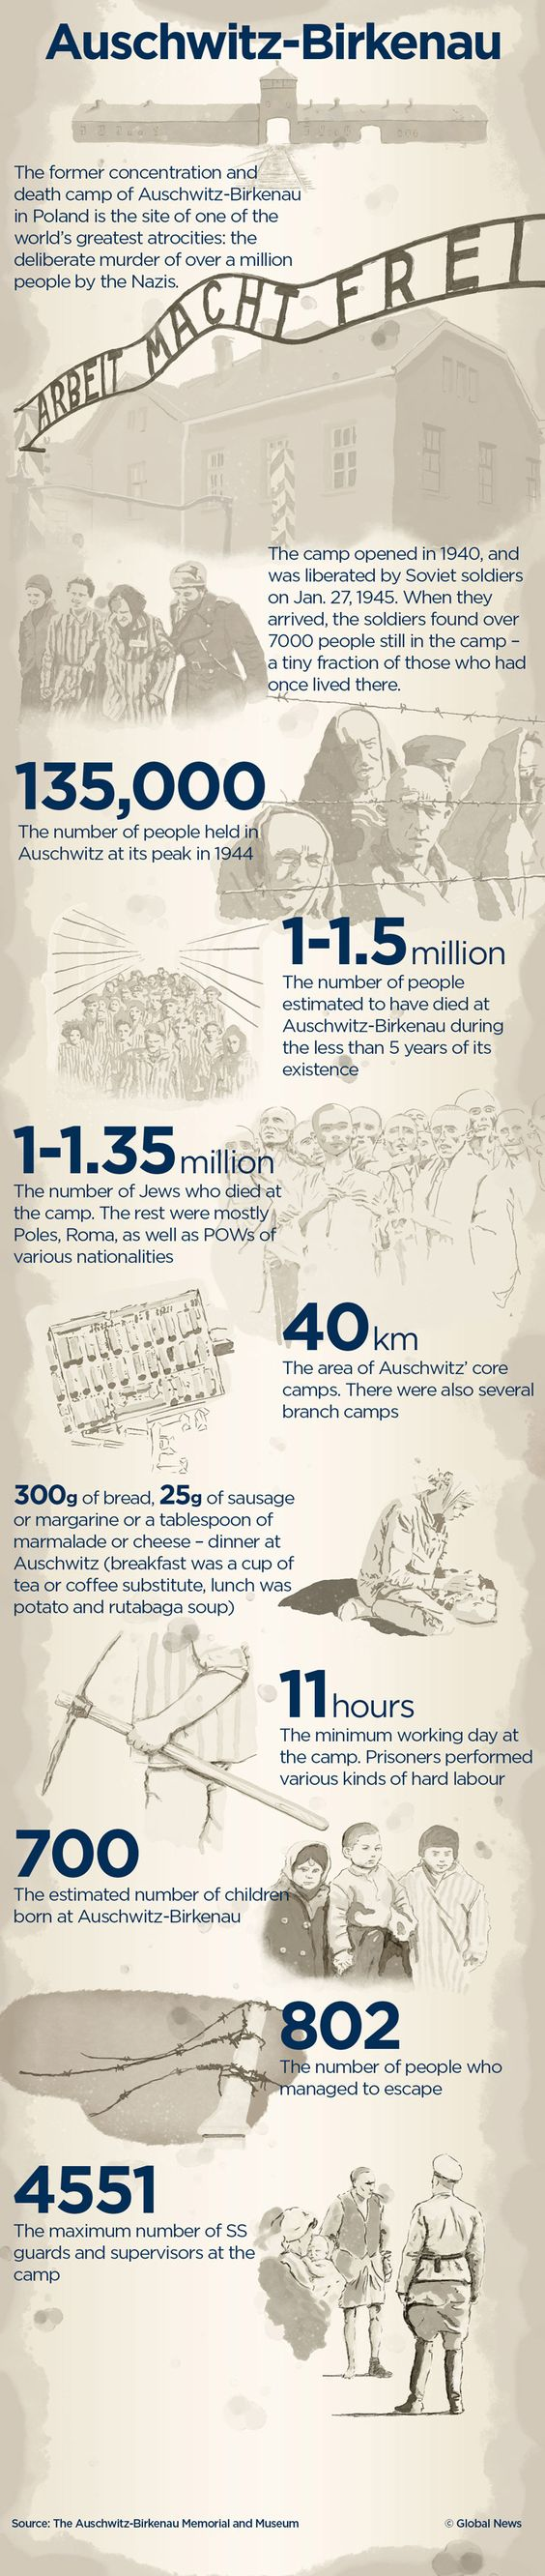 Infographic: Auschwitz by the Numbers.  Today marks the 70th anniversary of the liberation of the Auschwitz-Birkenau concentration camp.: